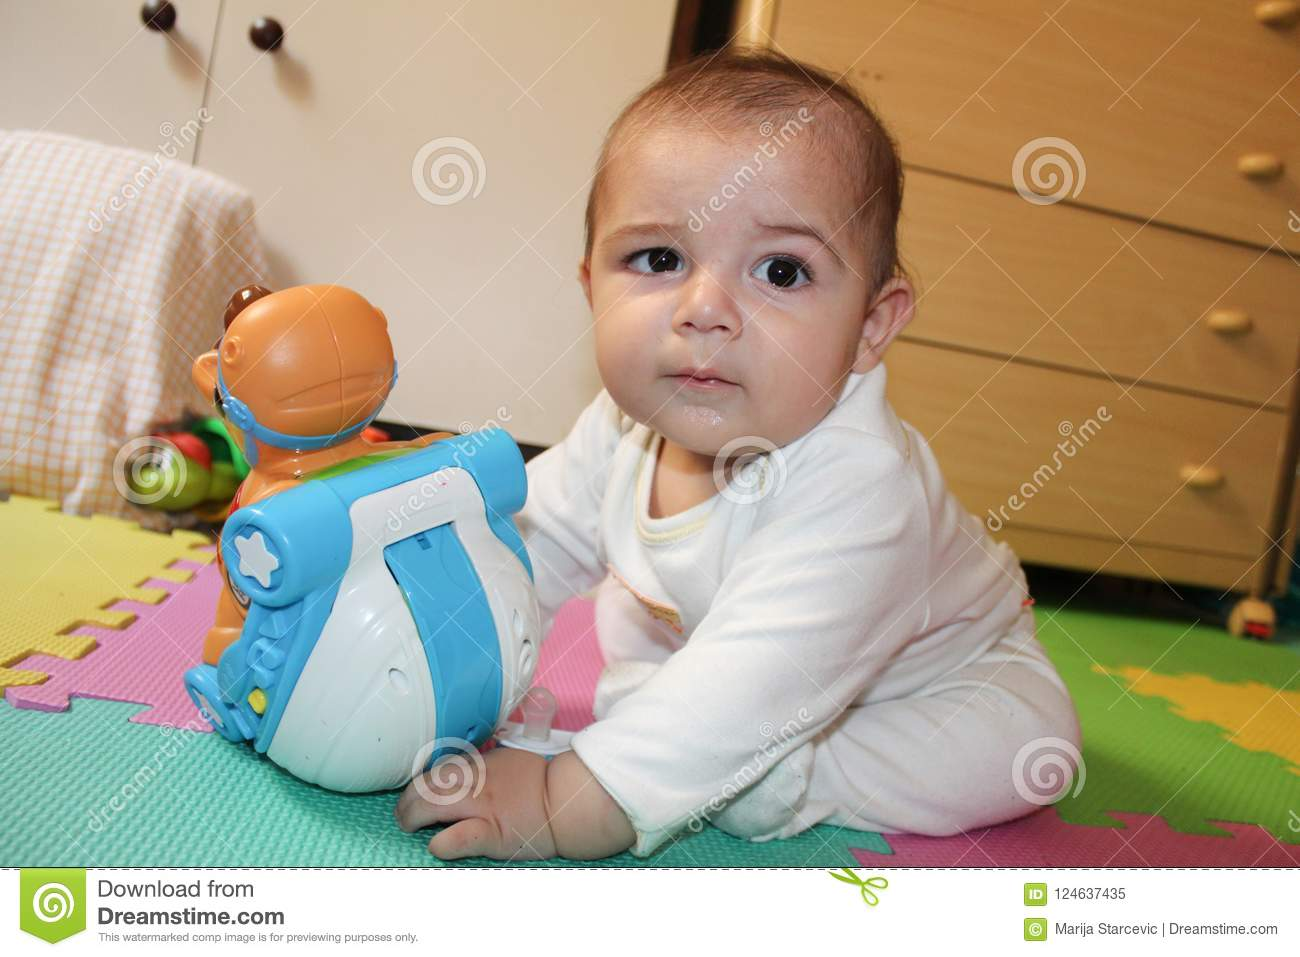 b2b047b3eb6 6 Months Old Baby Boy Playing With Toys Stock Image - Image of ...